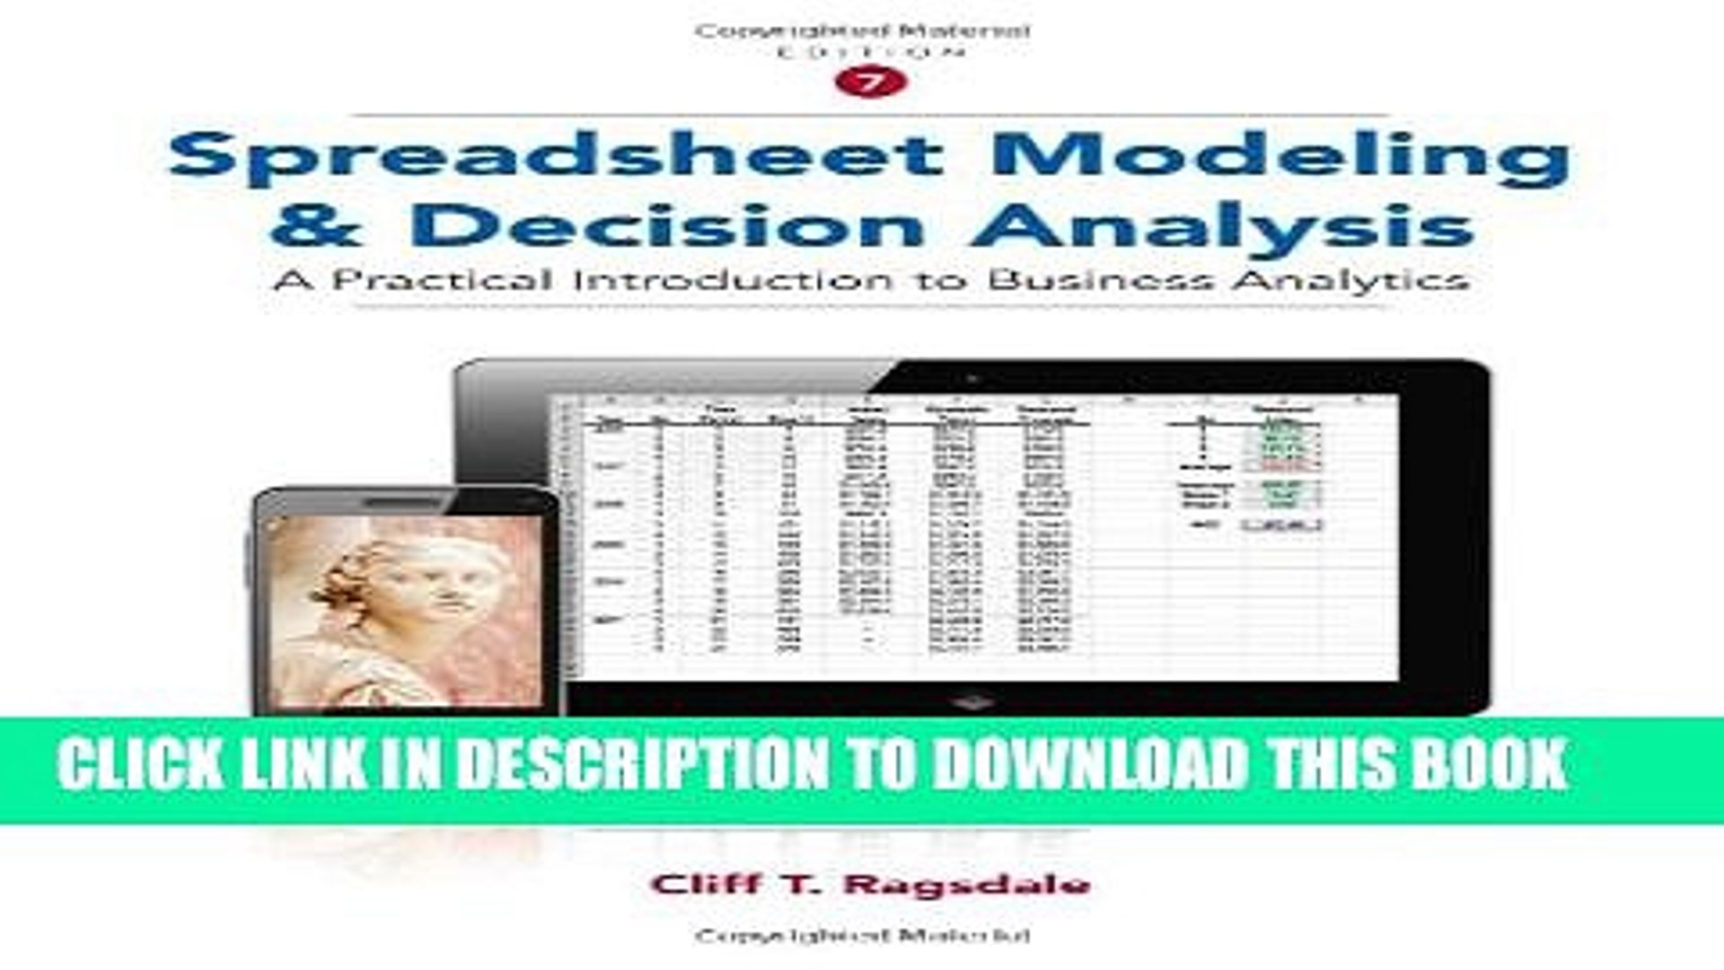 ragsdale spreadsheet modeling and decision analysis solutions manual ragsdale spreadsheet modeling and decision analysis ragsdale spreadsheet modeling and decision analysis solutions ragsdale spreadsheet modeling and decision analysis 8th edition ragsdale spreadsheet modeling and decision analysis pdf  Ragsdale Spreadsheet Modeling Intended For Pdf] Spreadsheet Modeling And Decision Analysis: A Practical Ragsdale Spreadsheet Modeling Printable Spreadshee